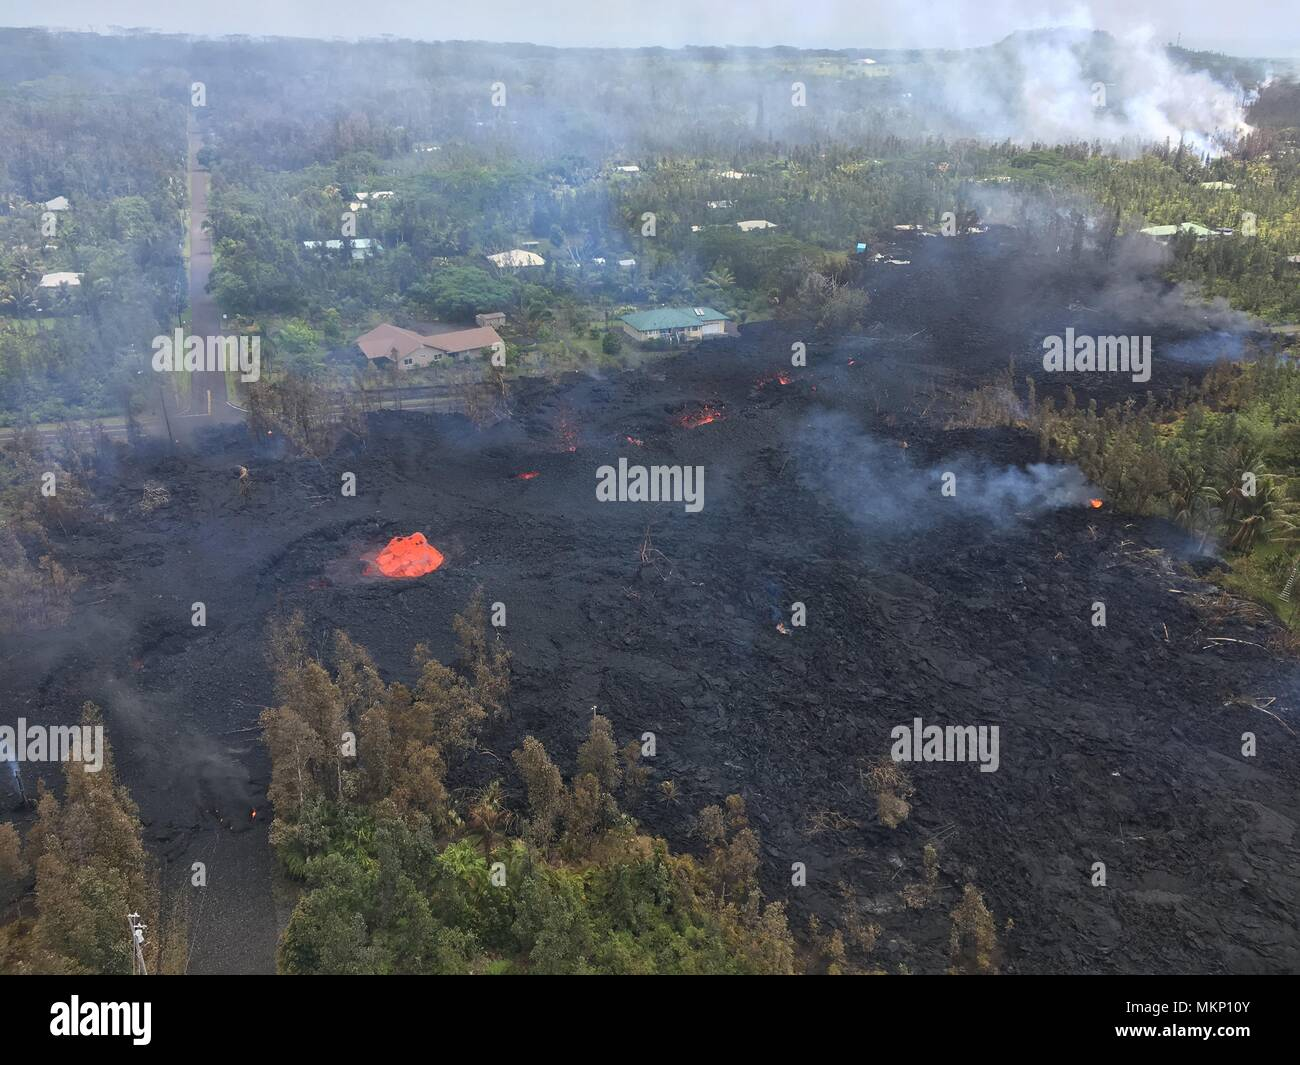 A pyroclastic lava flow from the Kilauea volcanic eruption moving toward a subdivision along Hookapu Street May 5, 2018 in Leilani Estates, Hawaii. The recent eruption continues destroying homes, forcing evacuations and spewing lava and poison gas on the Big Island of Hawaii. - Stock Image